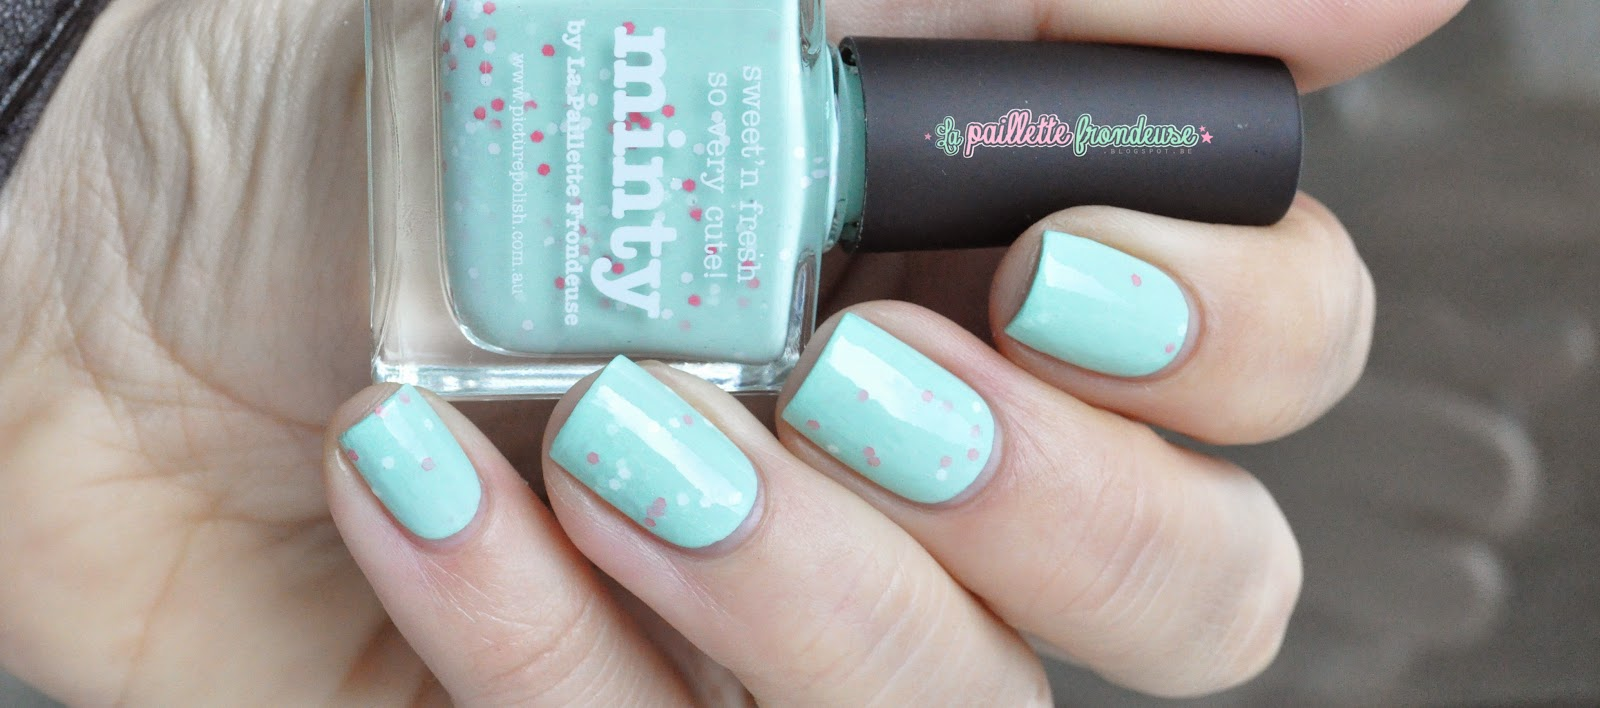 Picture polish Minty by La paillette frondeuse